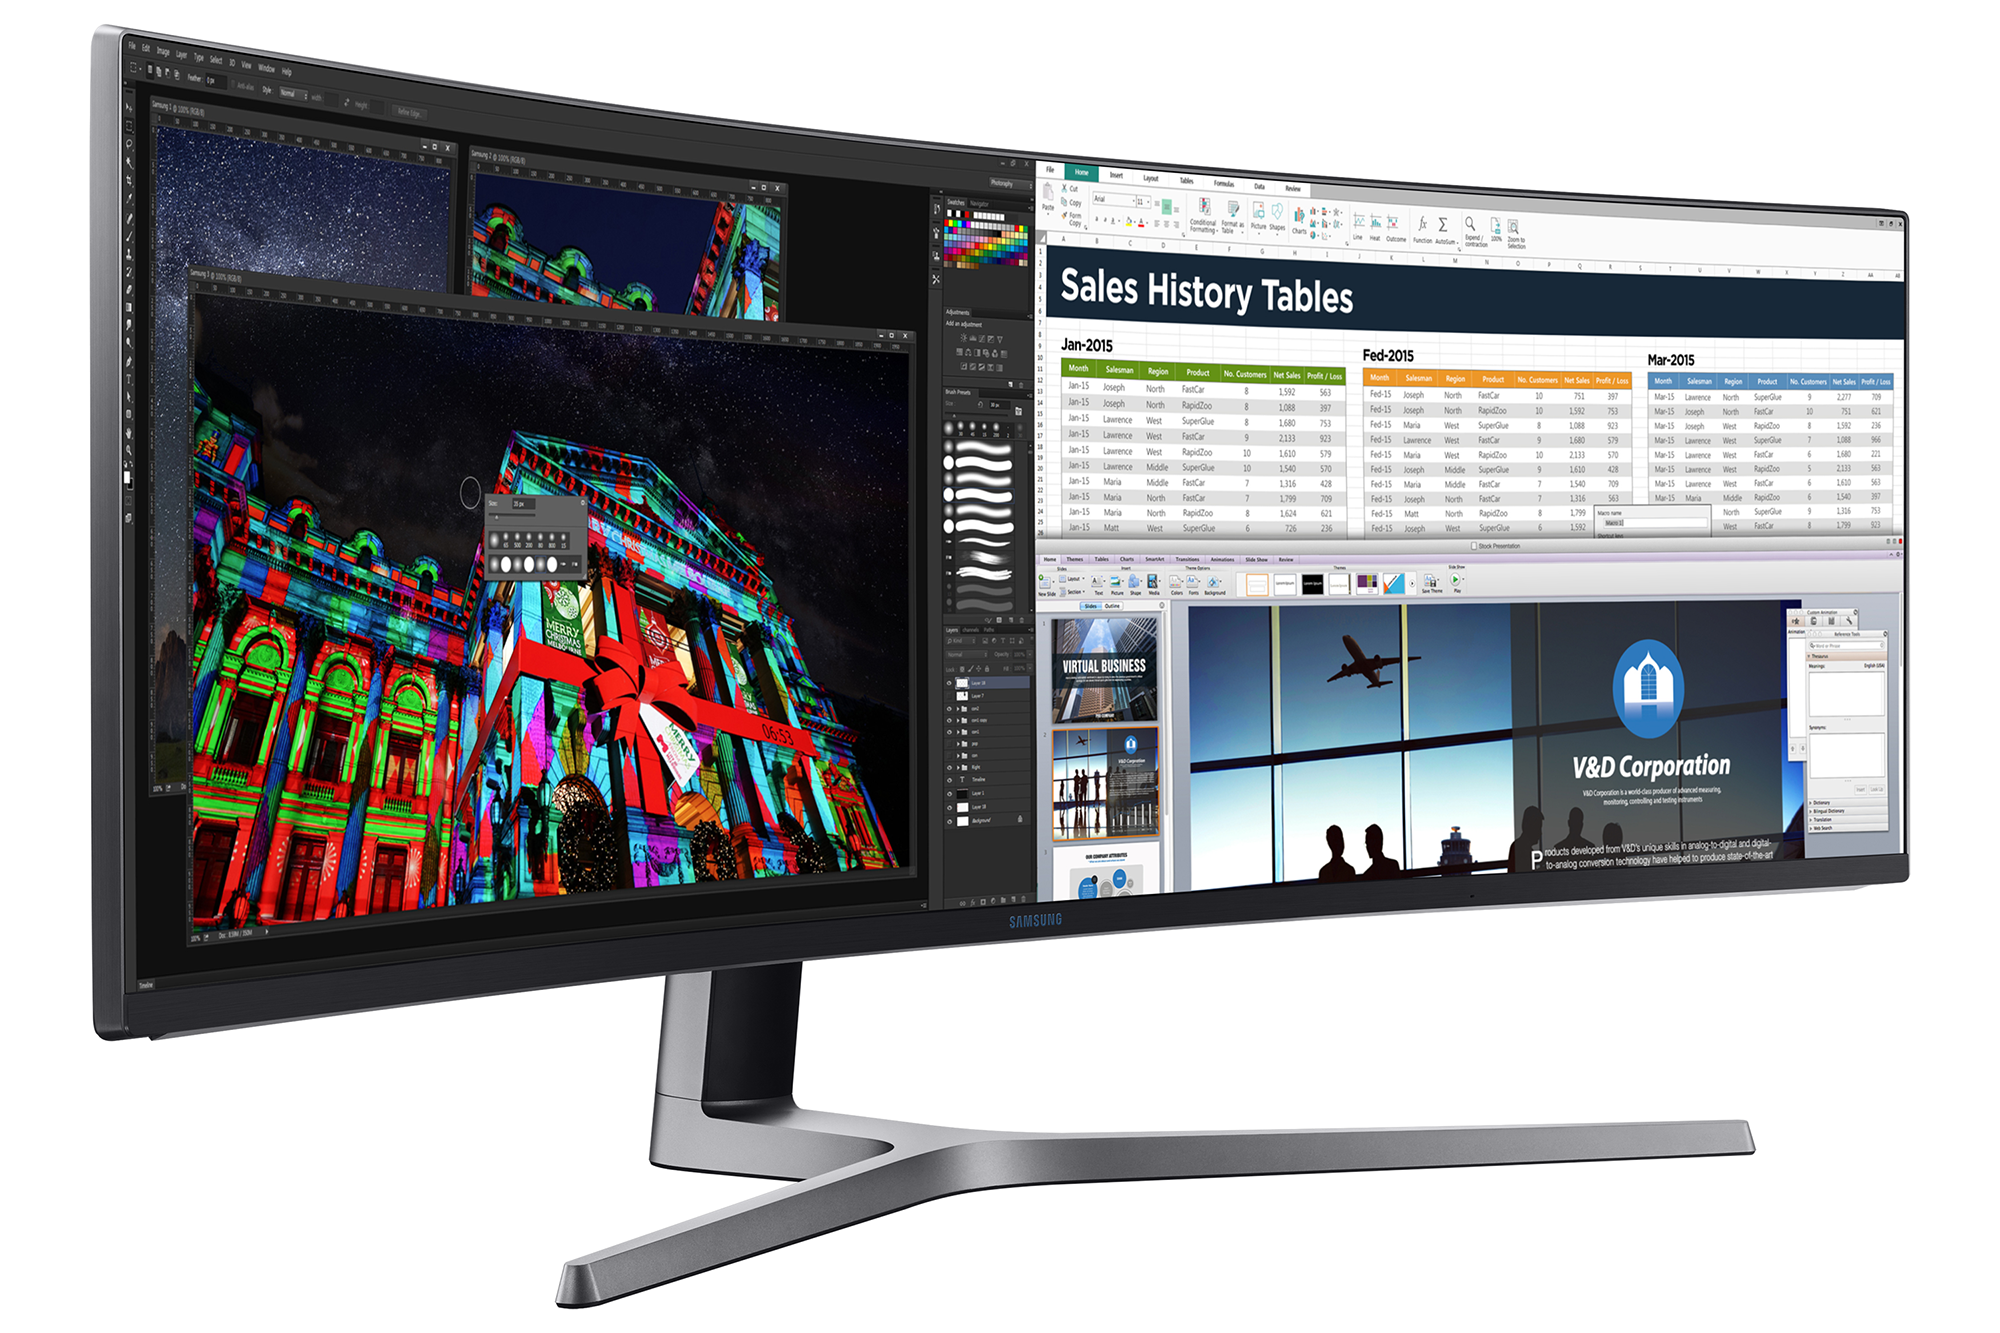 C49HG90 045 L Perspective Black Samsung Launches Ultra Wide HDR Monitor With QLED Technology